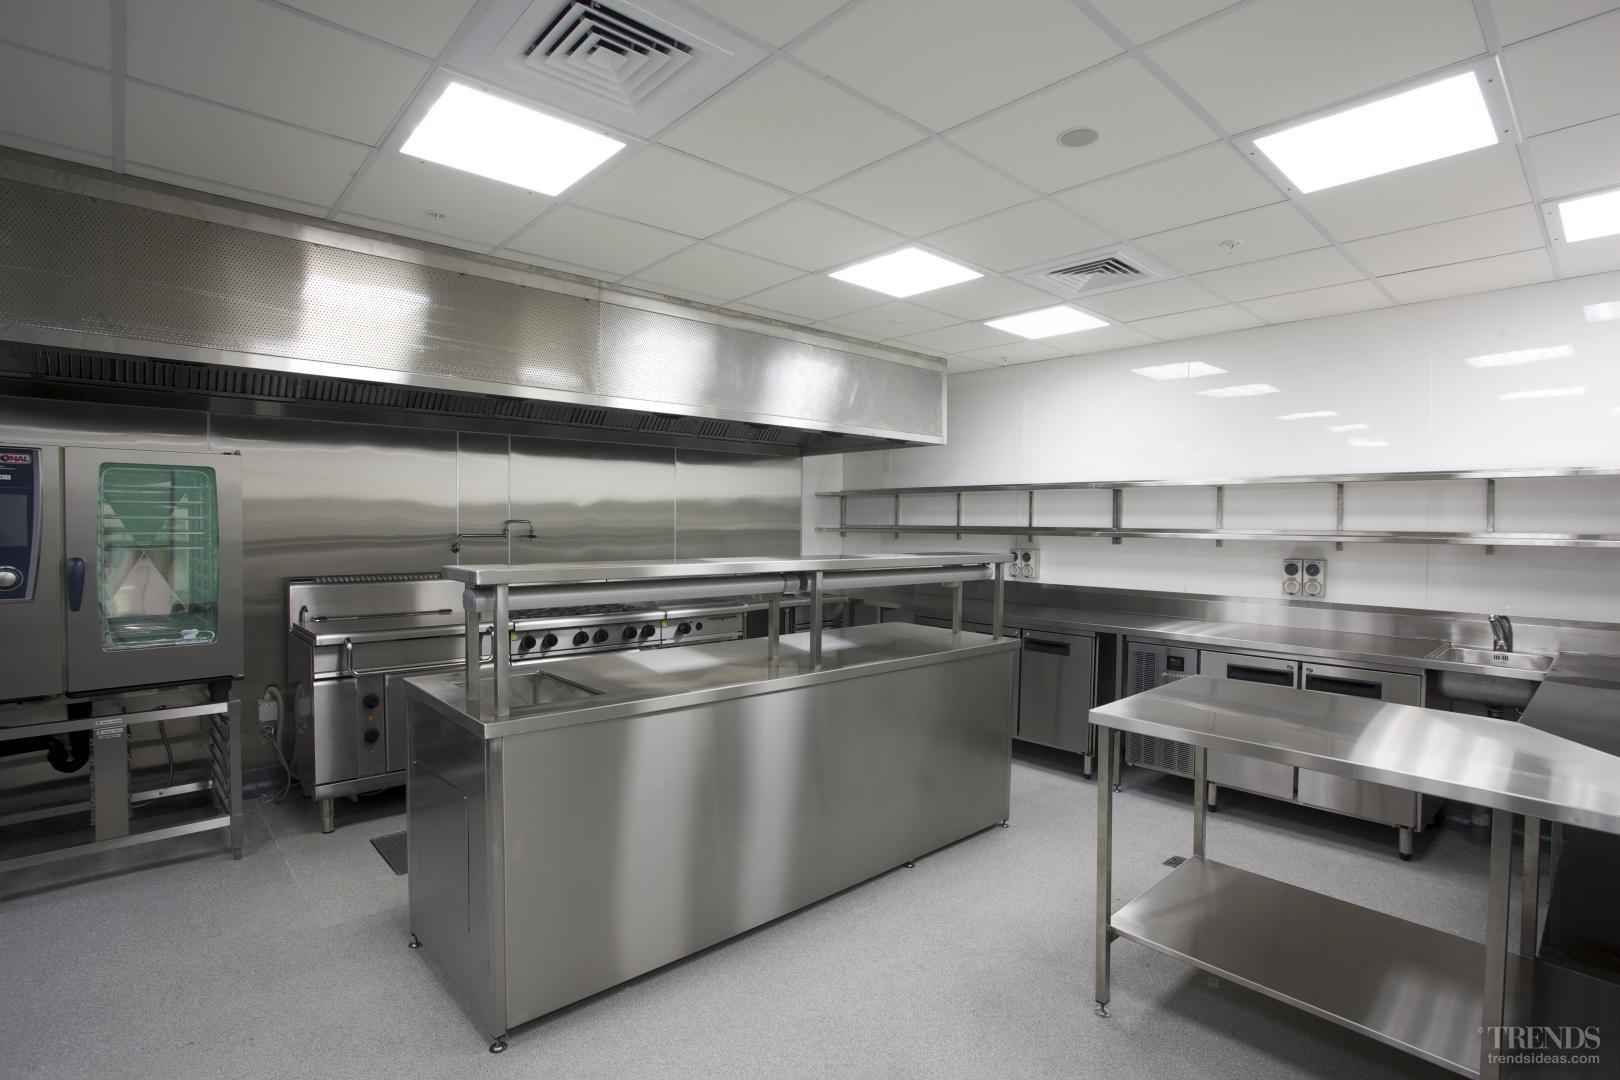 Catering To The Times Wildfire Fit Out Of Commercial Kitchen For Anz Renovation